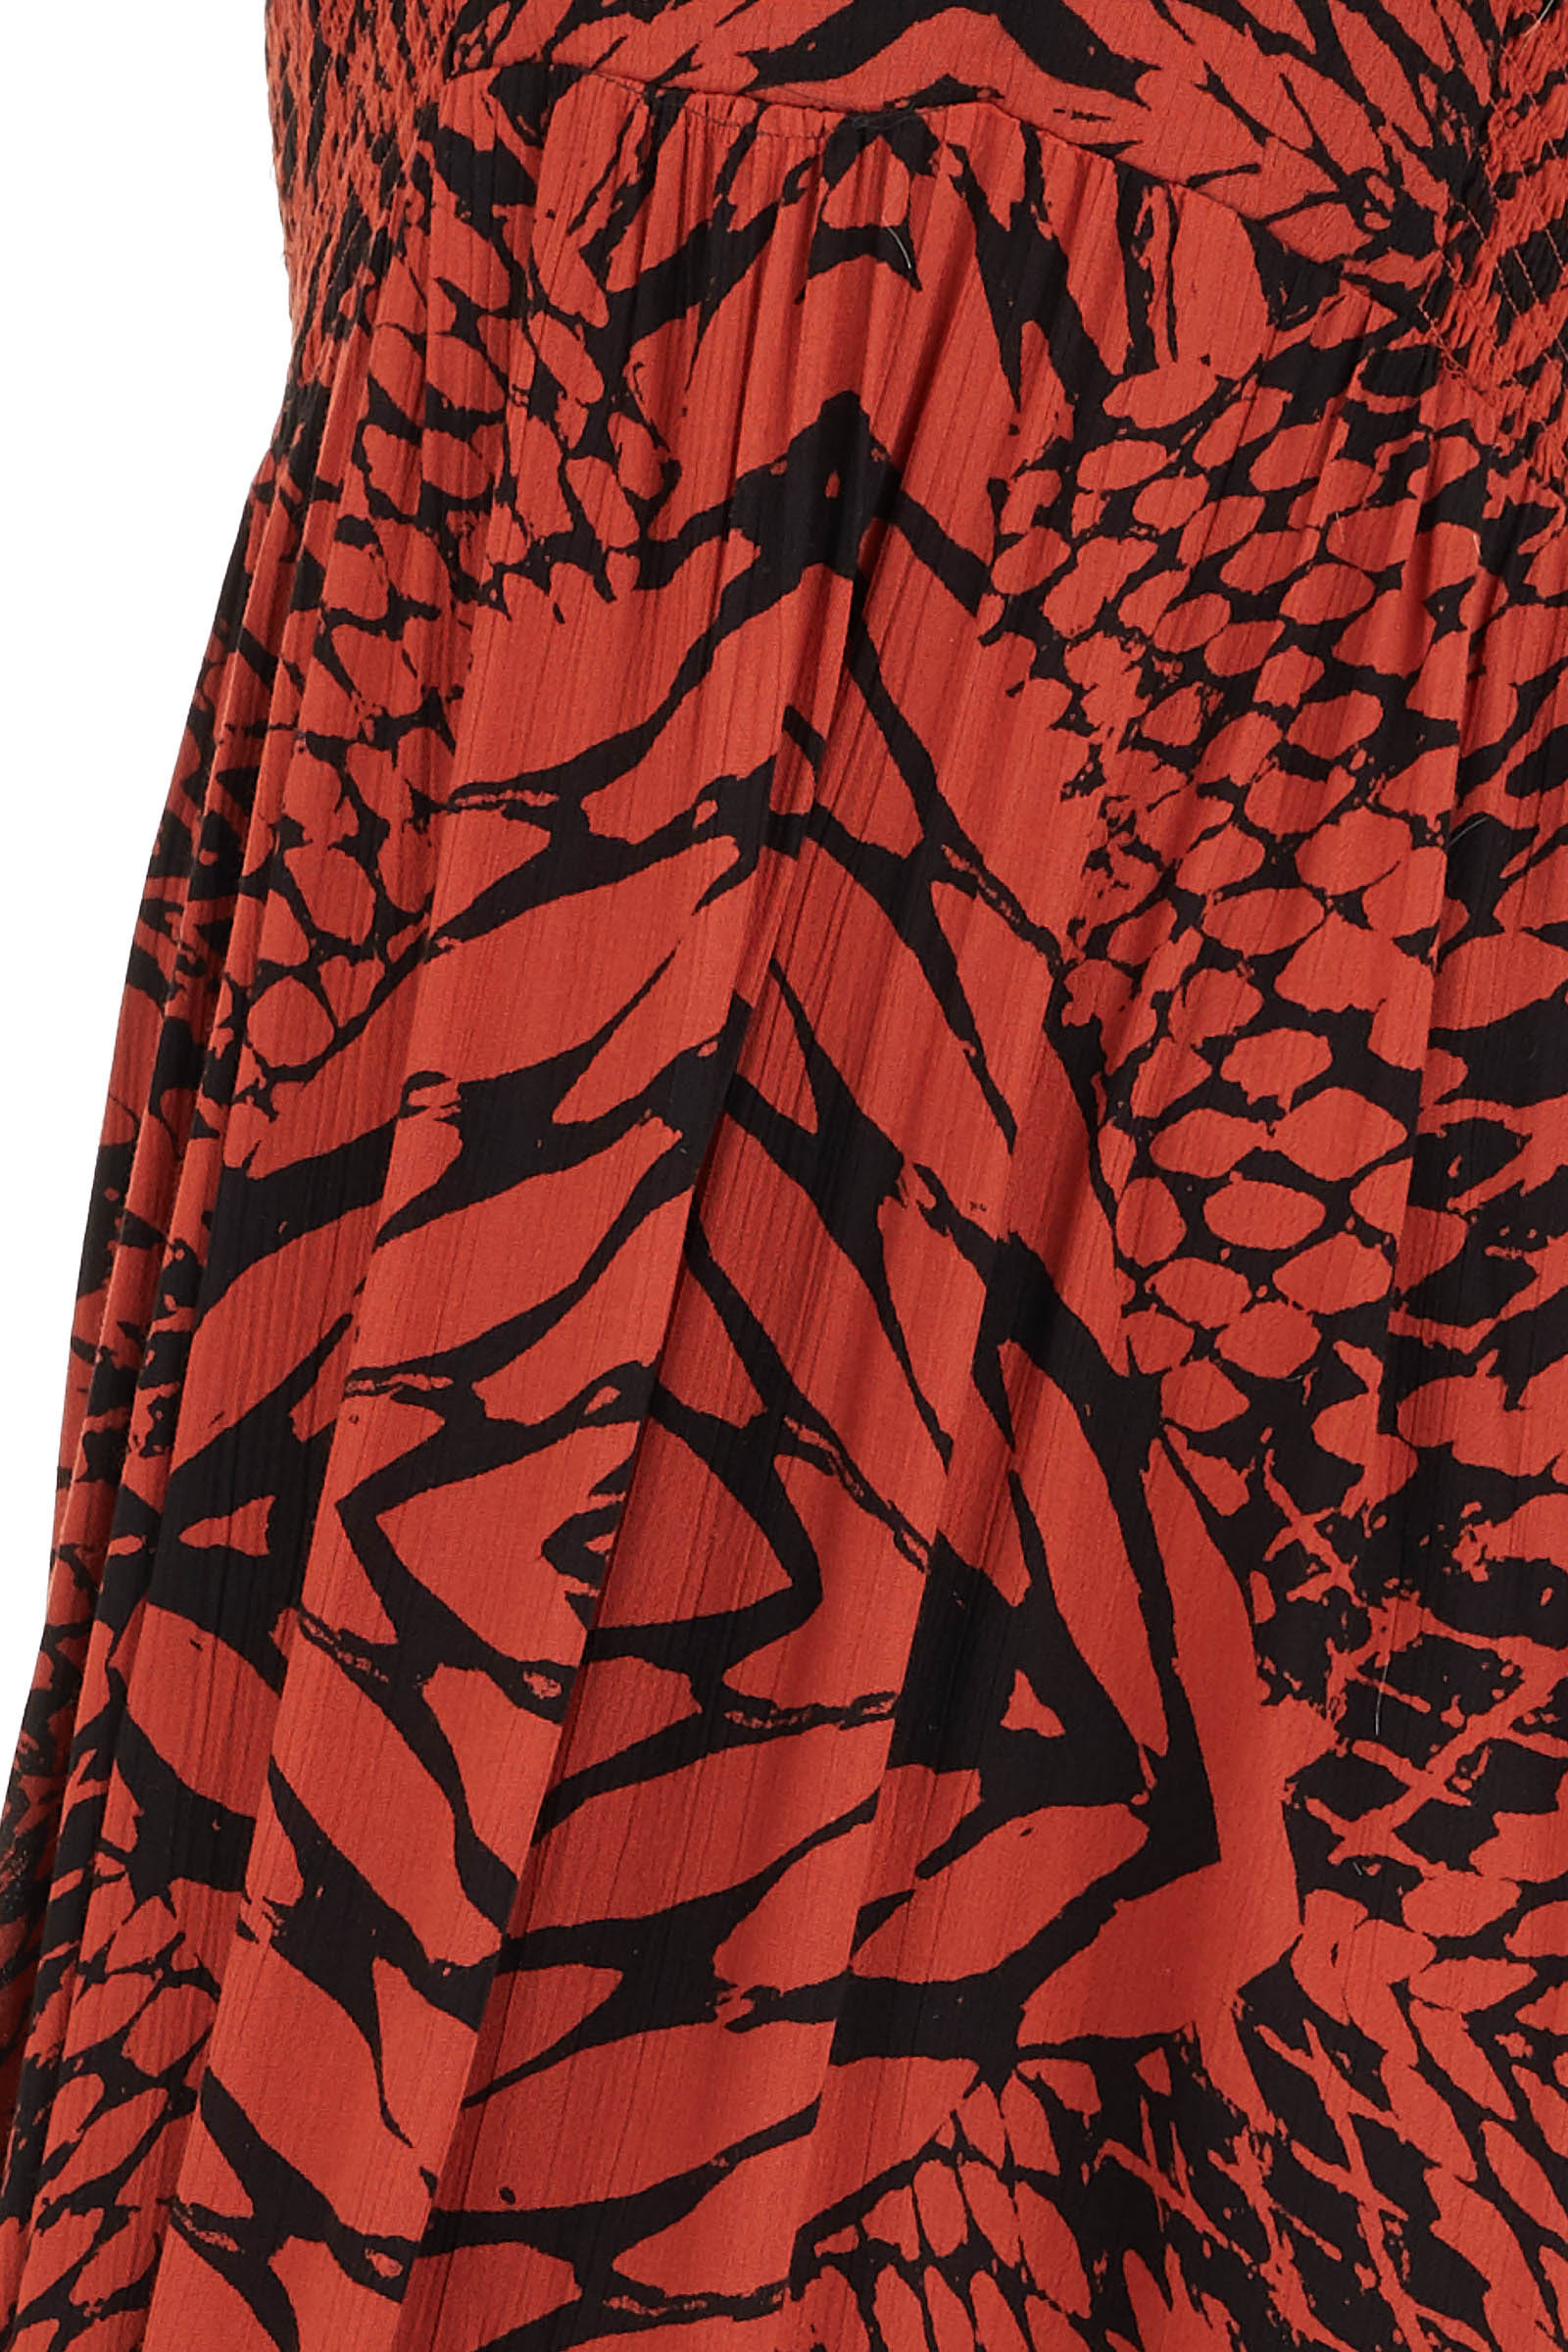 Brick Red and Black Printed Smocked Maxi Dress detail